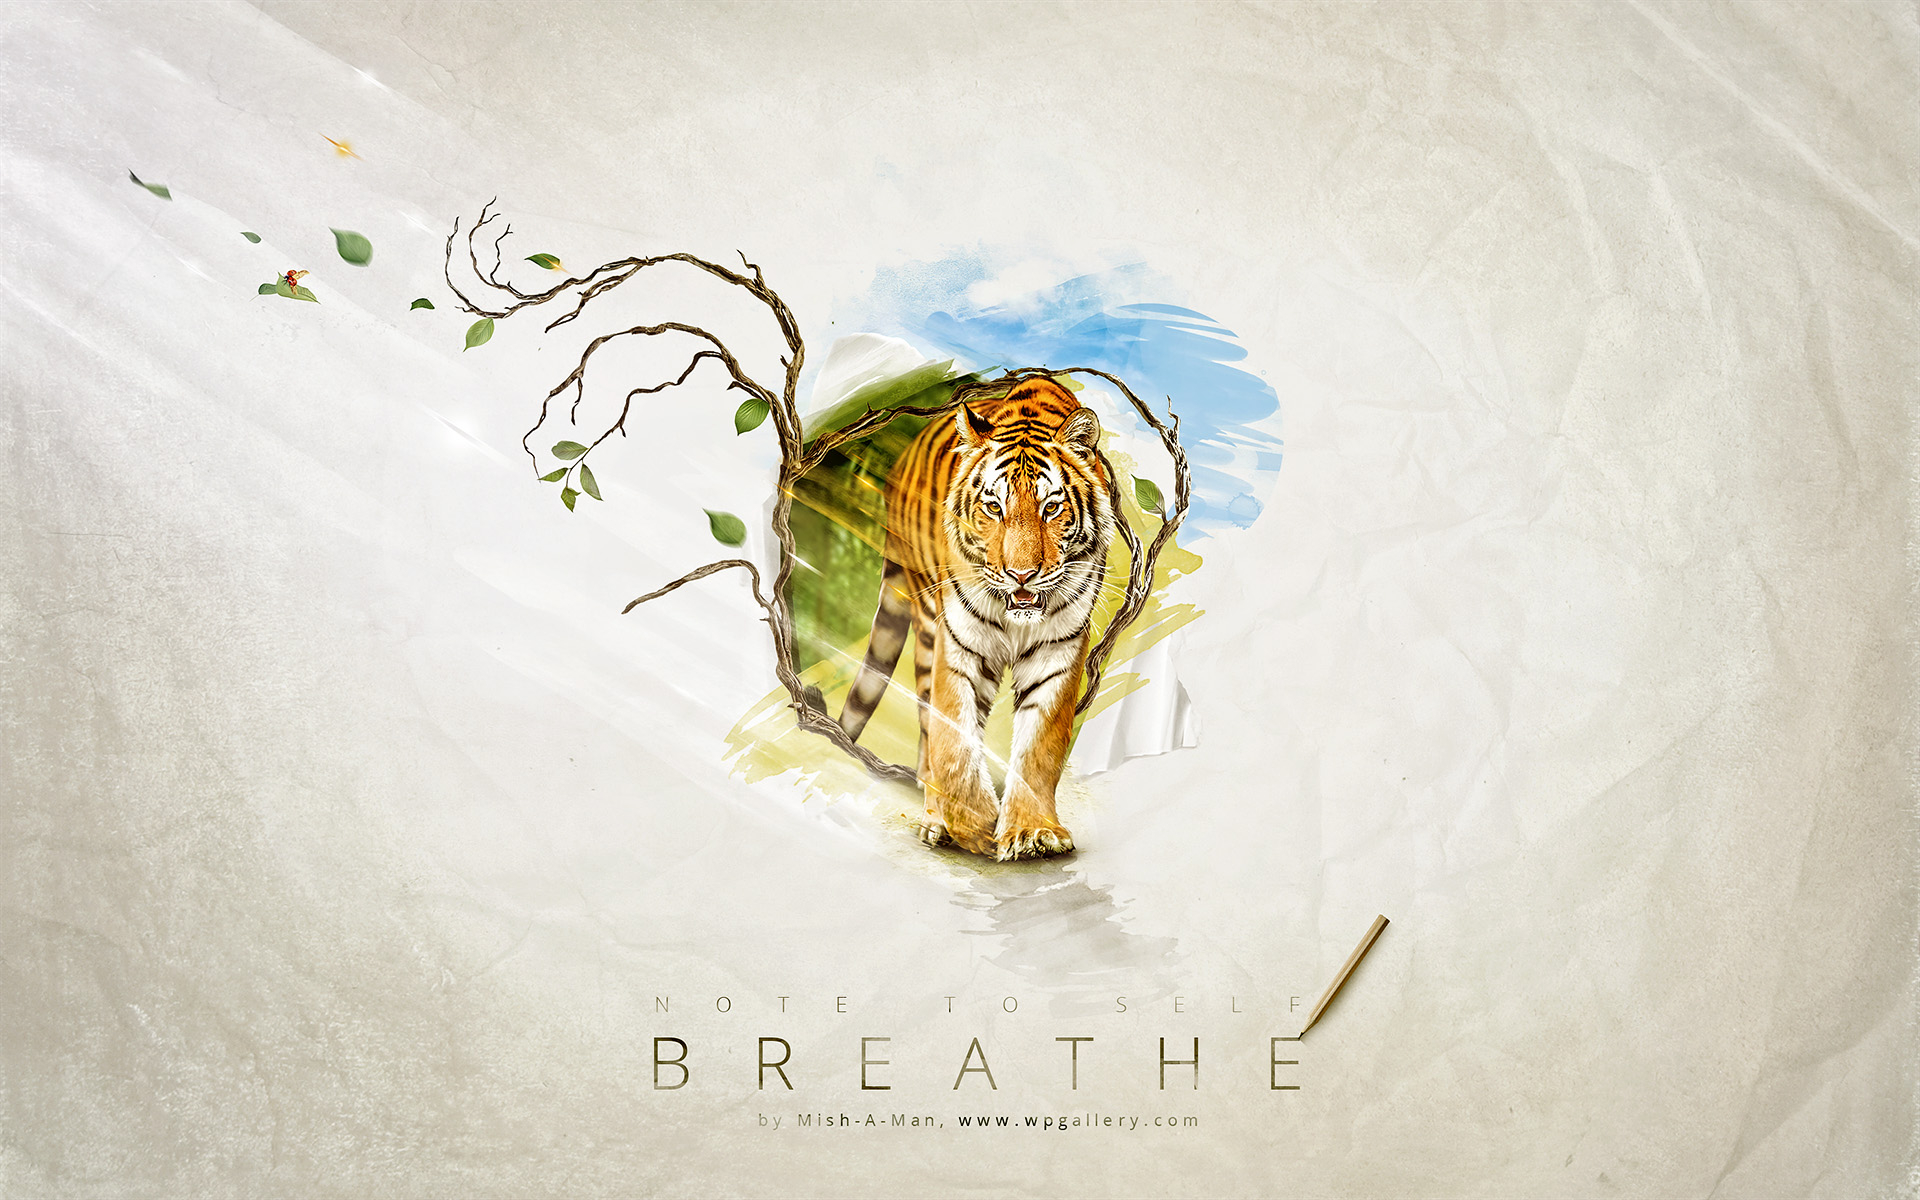 Breathe for 1920 x 1200 widescreen resolution